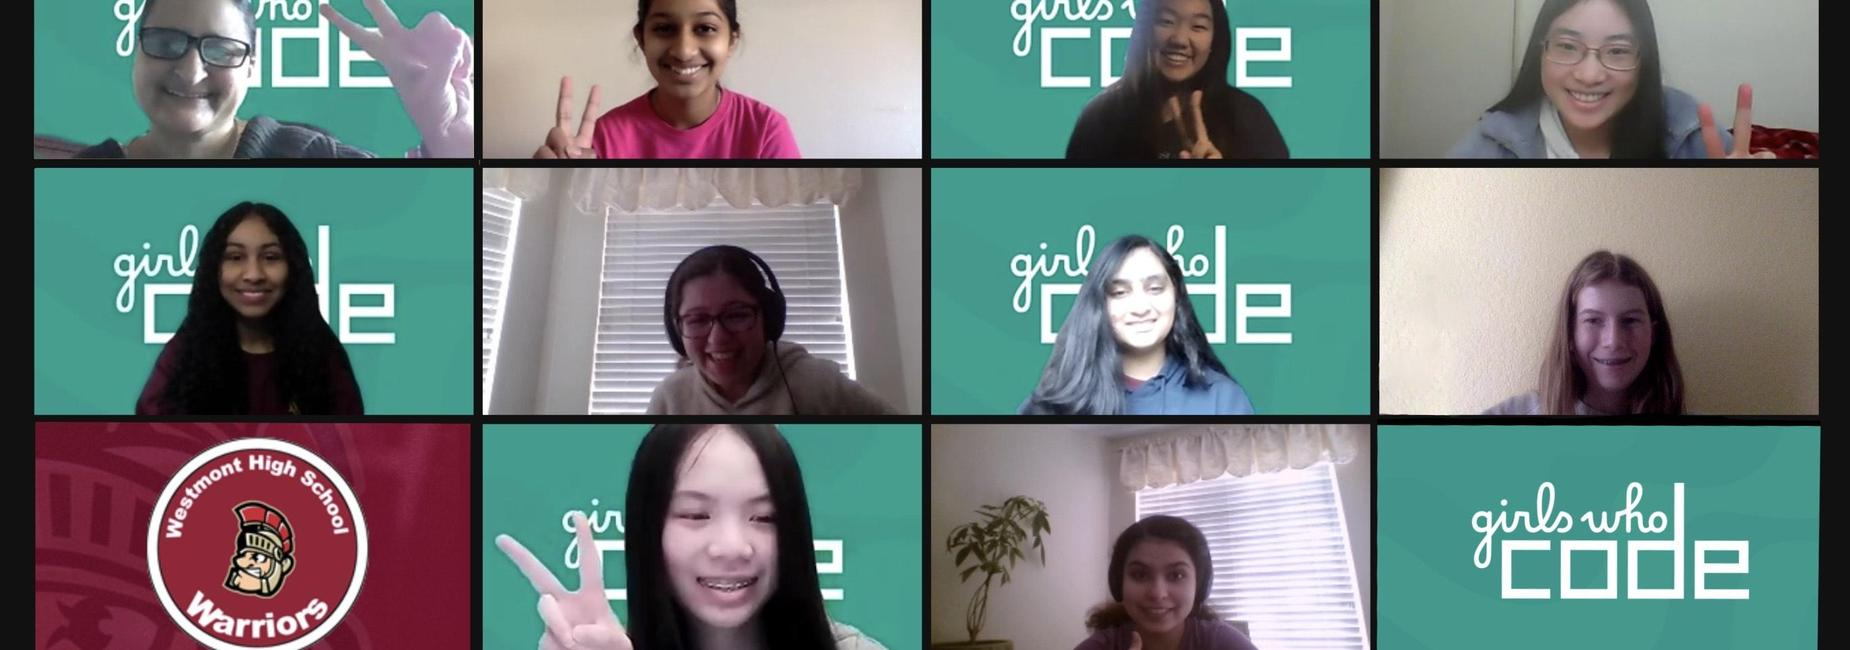 Screenshot of the members of the Girls Who Code Club zoom meeting